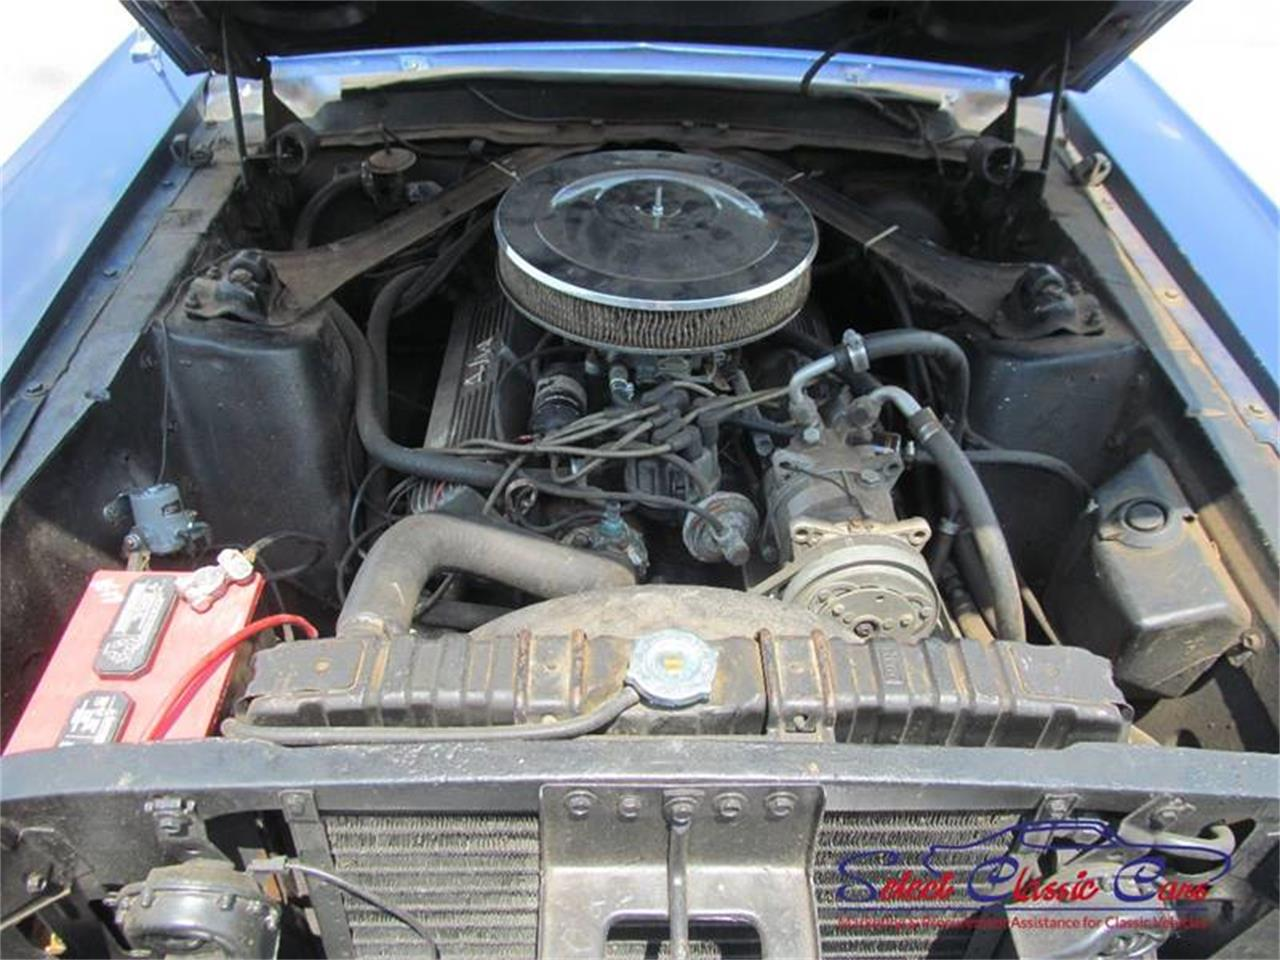 1968 Ford Mustang for sale in Hiram, GA – photo 13